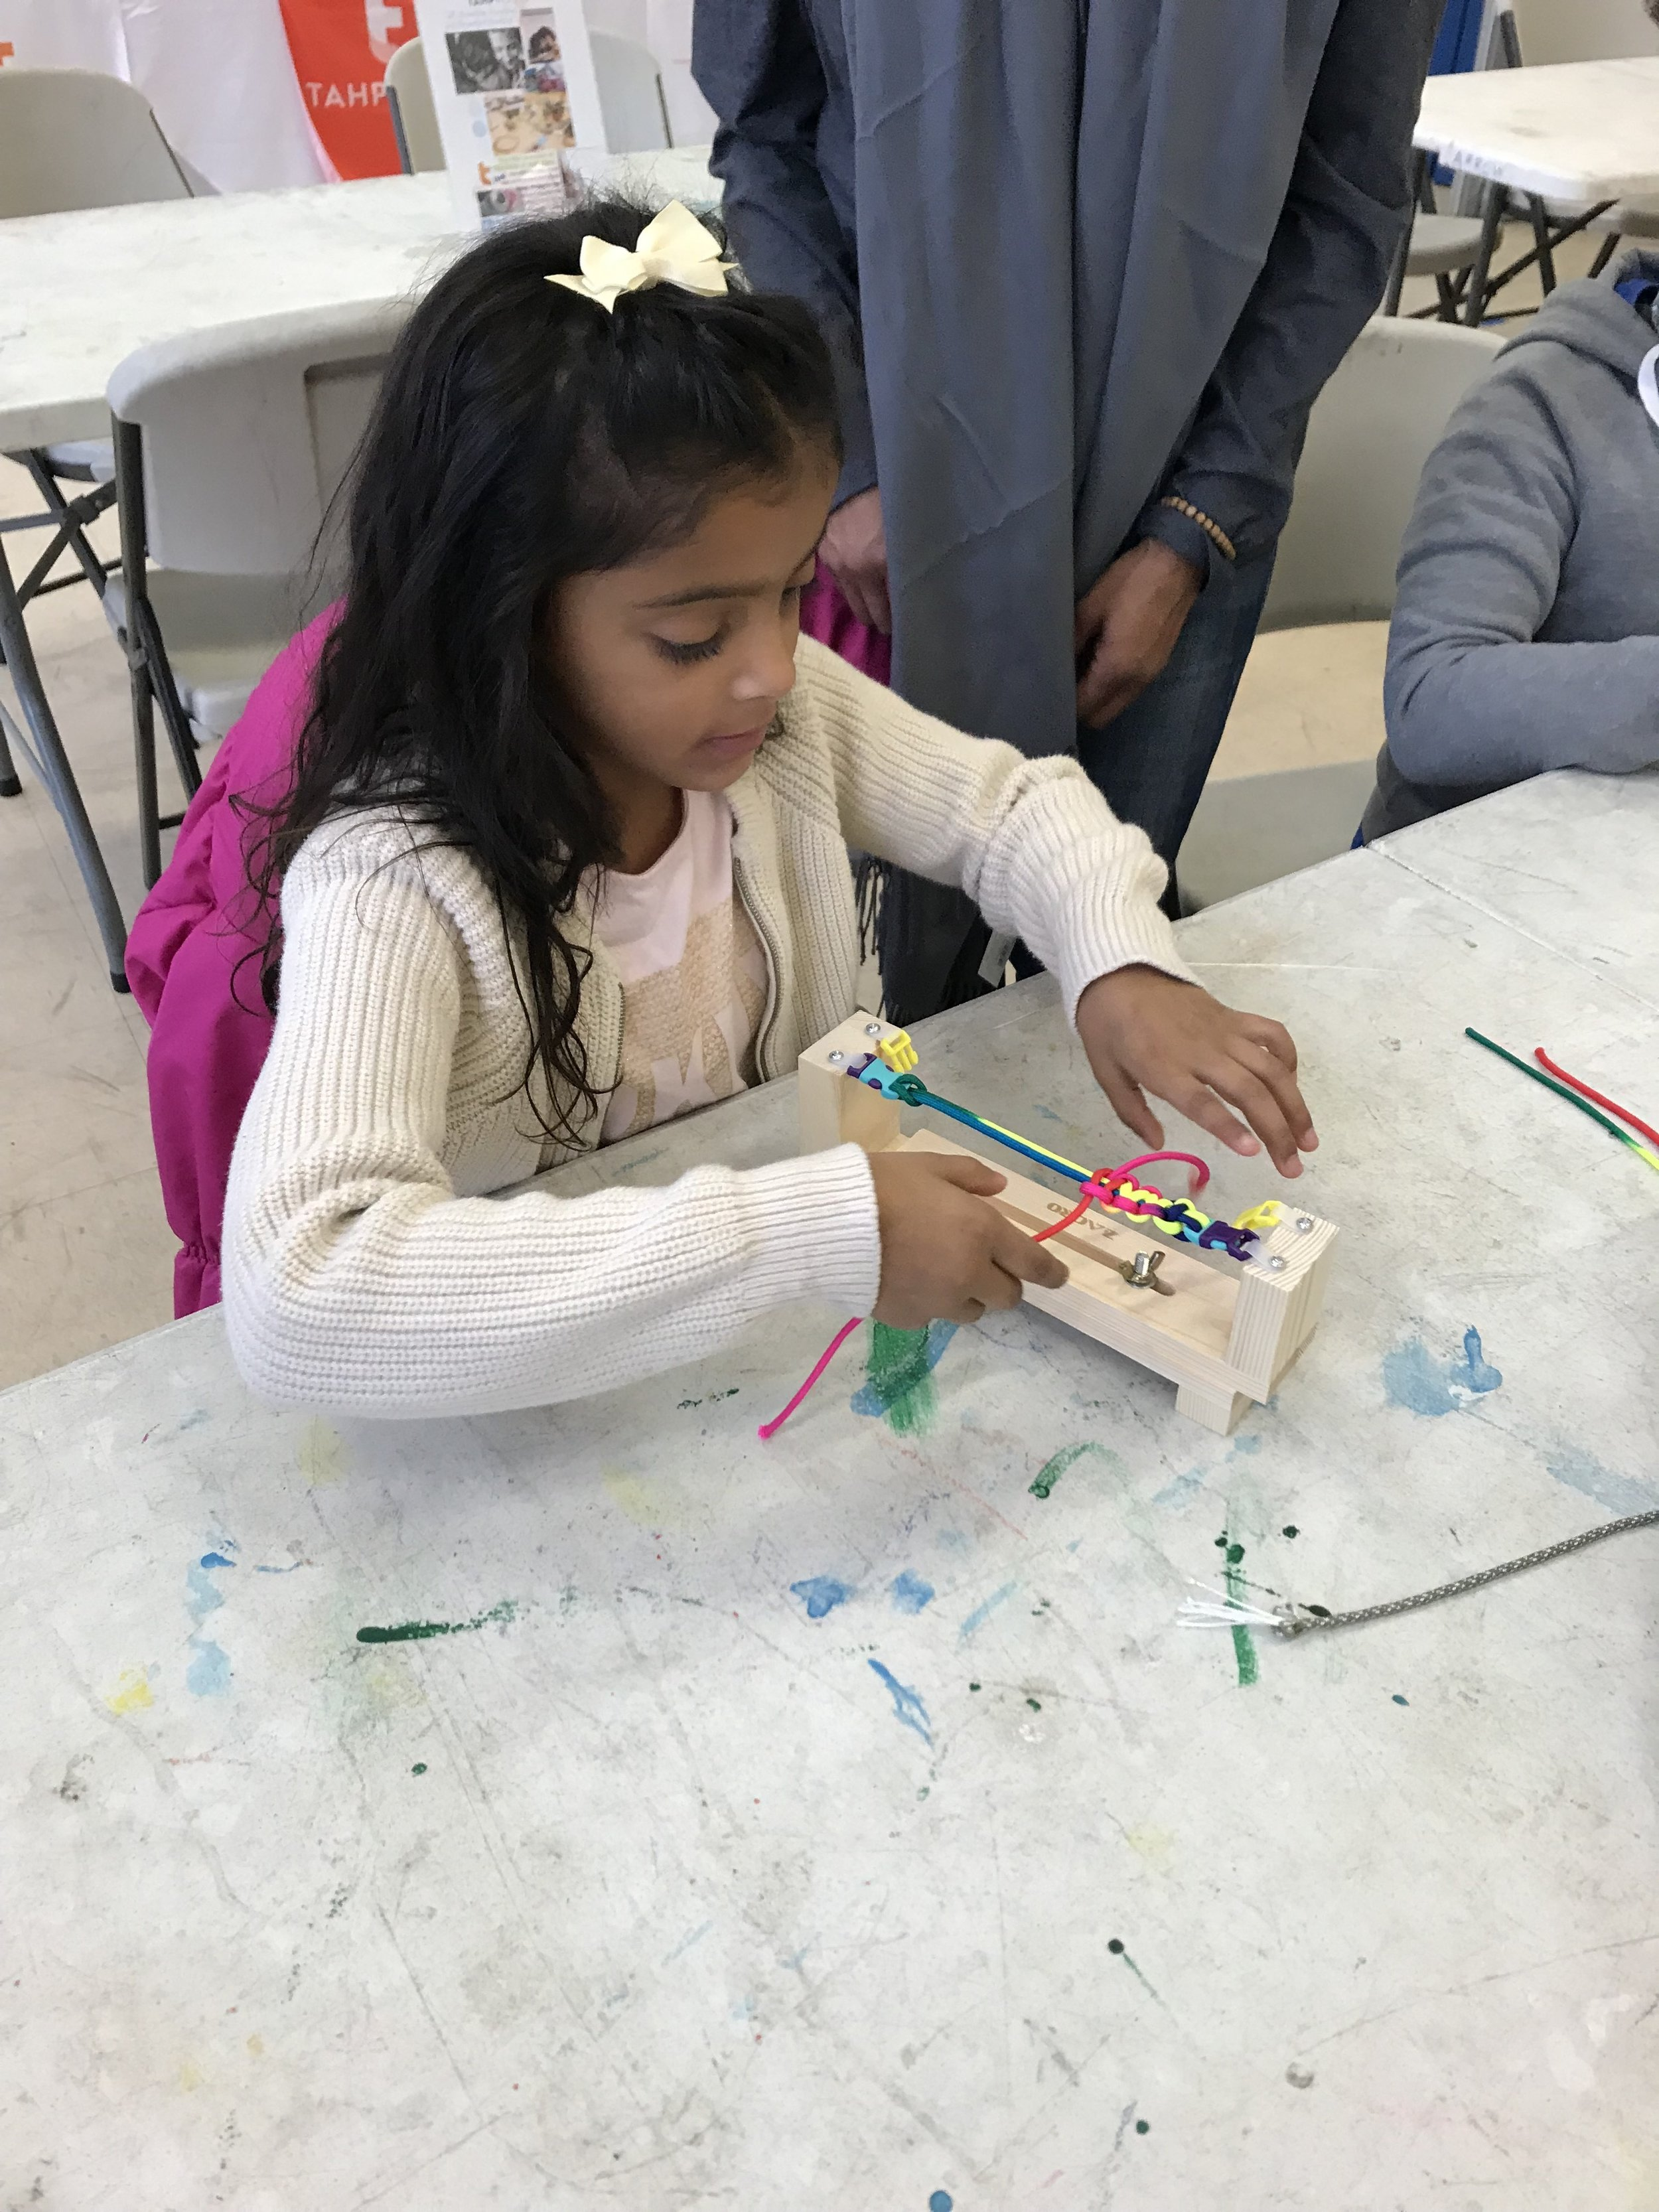 Learning the art of gifting thanks… - A.R.R.O.W. Community House in Astoria, Queens was the perfect venue to house community youth and enjoy a Sunday Funday in the art of gifting thanks. We made gratitude bracelets during the season of Thanksgiving. Kids and adults alike learned how to make a gift with their hands and not their wallets! Christmas was sure to be stylish and colorful for many!